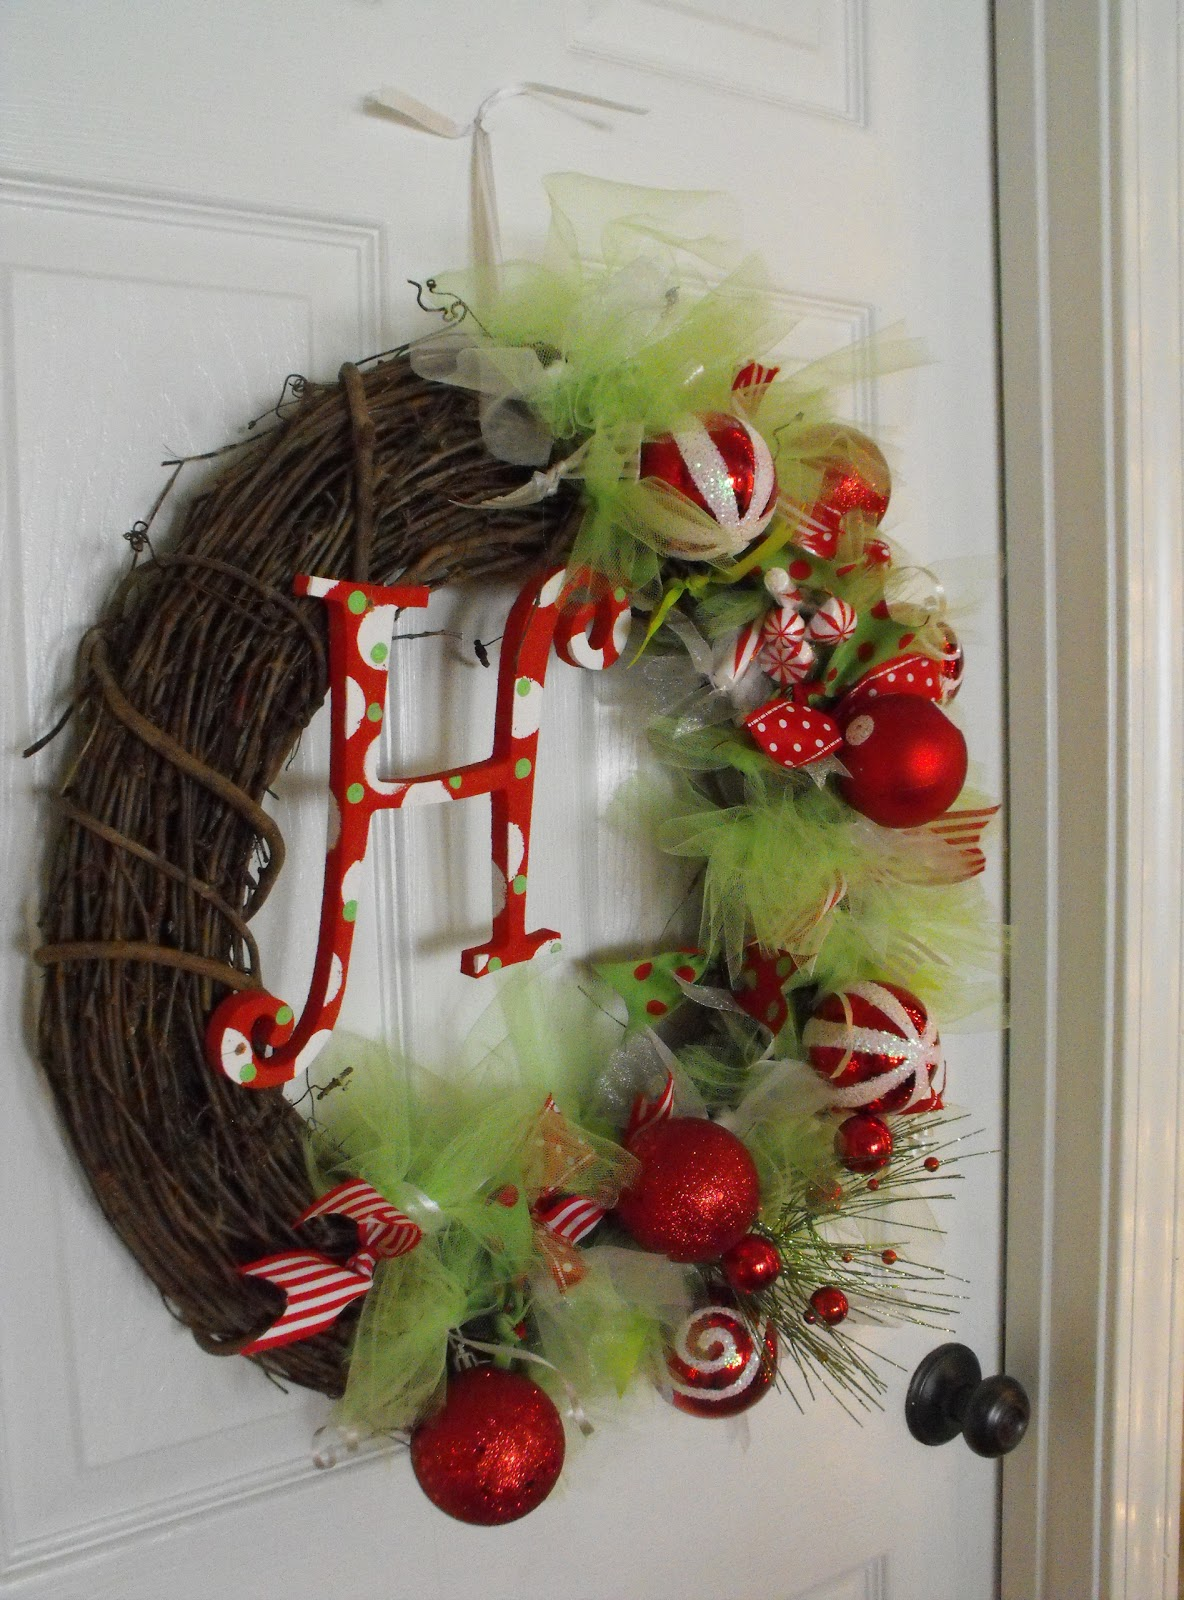 Susie Harris Diy Christmas Wreath: making wreaths